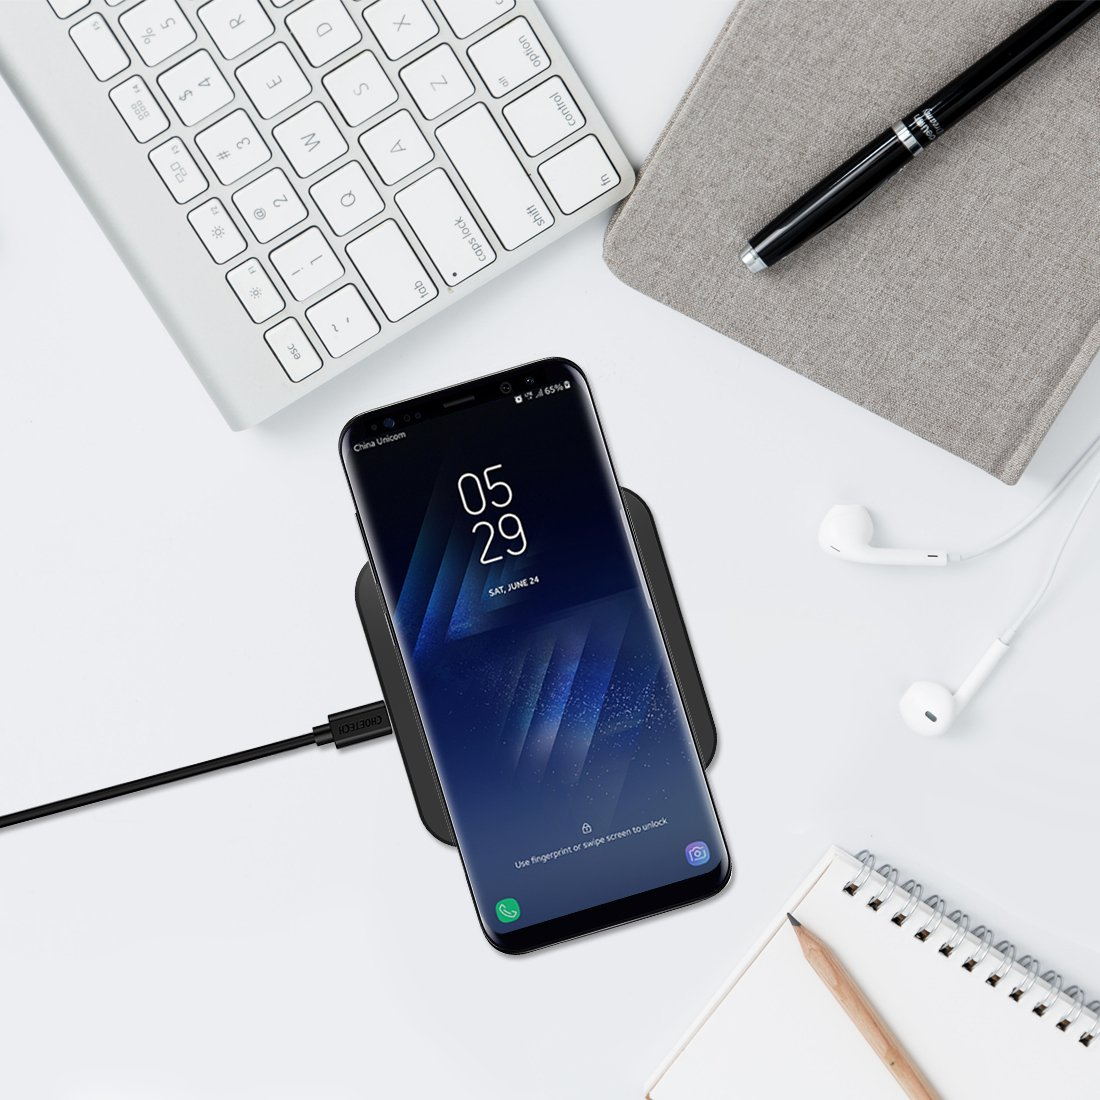 CHOETECH 10W Fast Wireless Charger Compatible Samsung Galaxy S9, S9 S8 Plus,Note 8, S8, S7, S7 Edge, Standard Wireless Charging Pad Compatible iPhone X, 8, 8 Plus (No AC Adapter) by CHOETECH (Image #7)